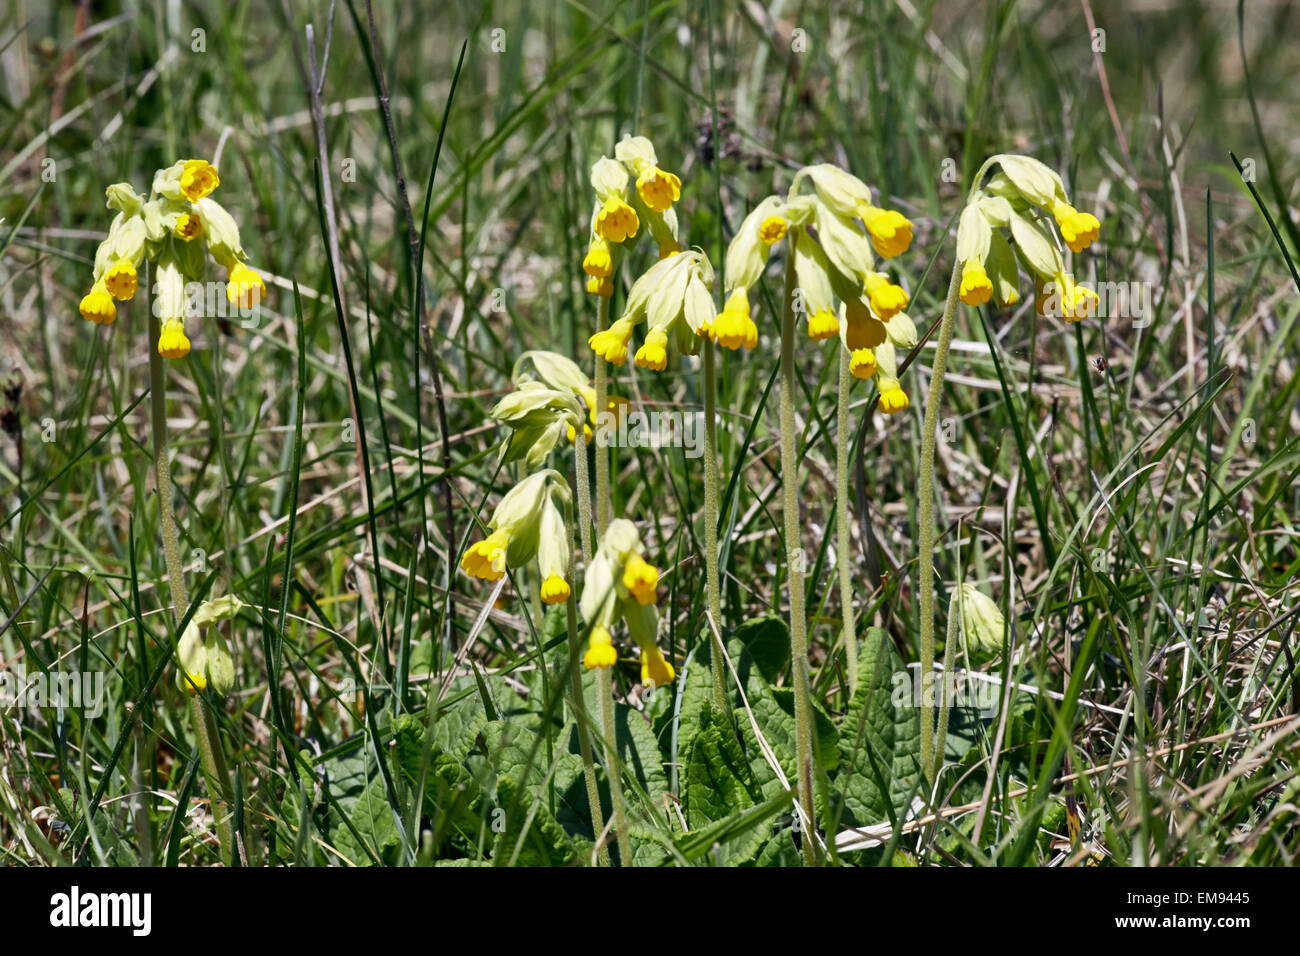 Cowslips growing on the chalk grassland of Denbies Hillside. Ranmore Common, Surrey, England. - Stock Image